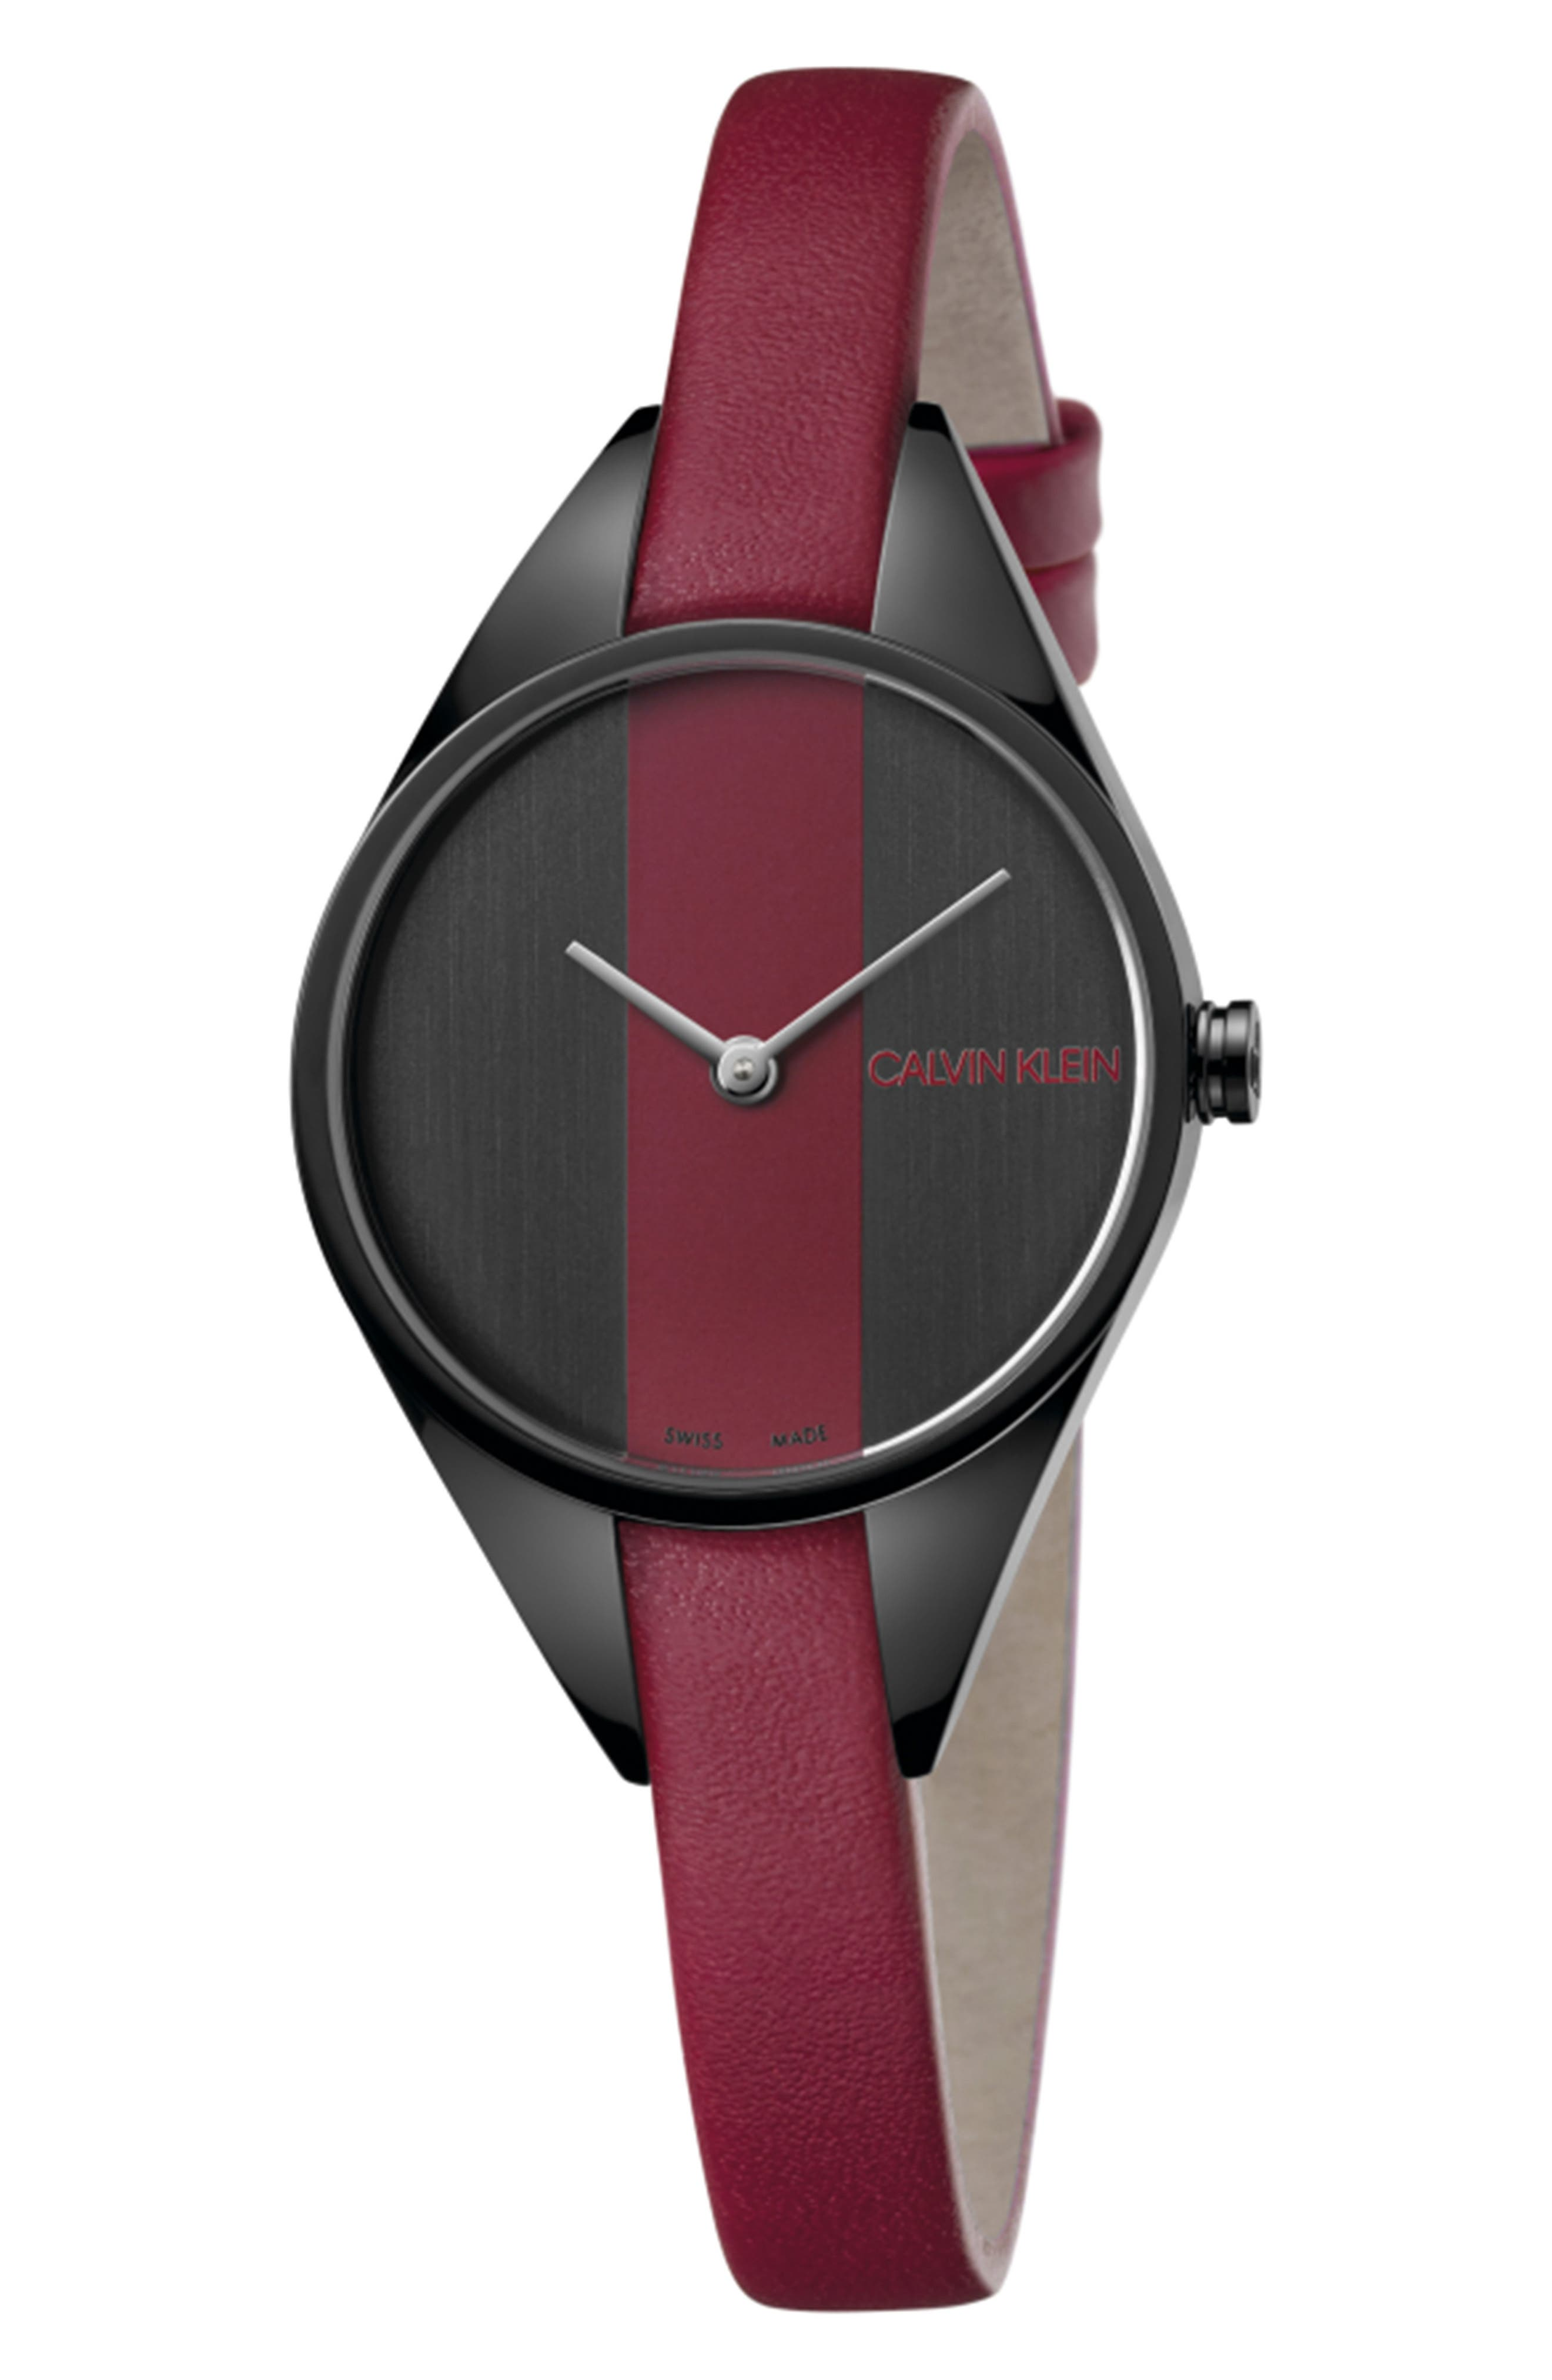 CALVIN KLEIN Achieve Rebel Leather Band Watch, 29mm, Main, color, RED/ BLACK